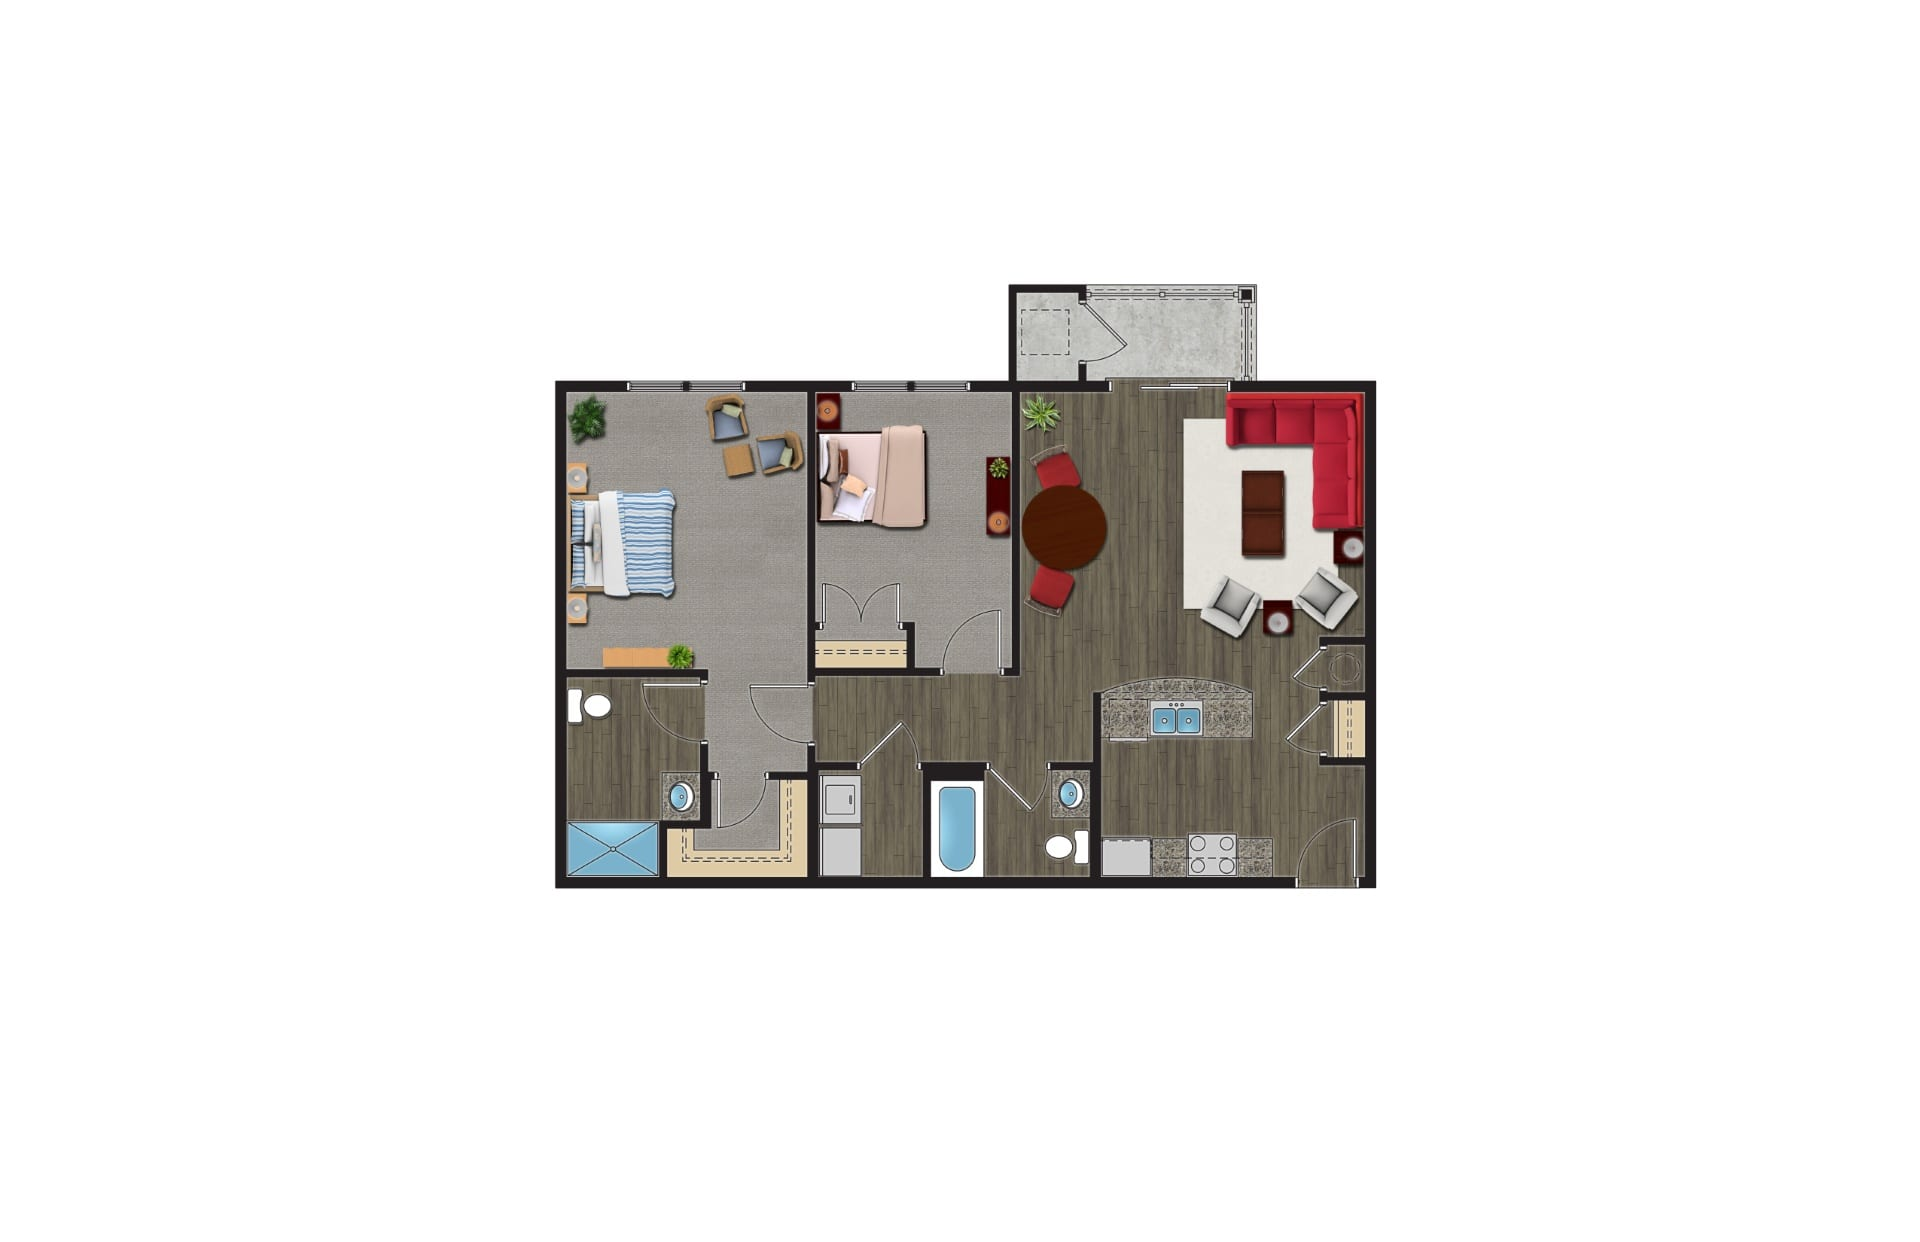 The Linden Floor Plan, Luxury Apartments with Garages for rent. A 2 Bedroom Apartment in Orchard Park NY are pet friendly apartments.